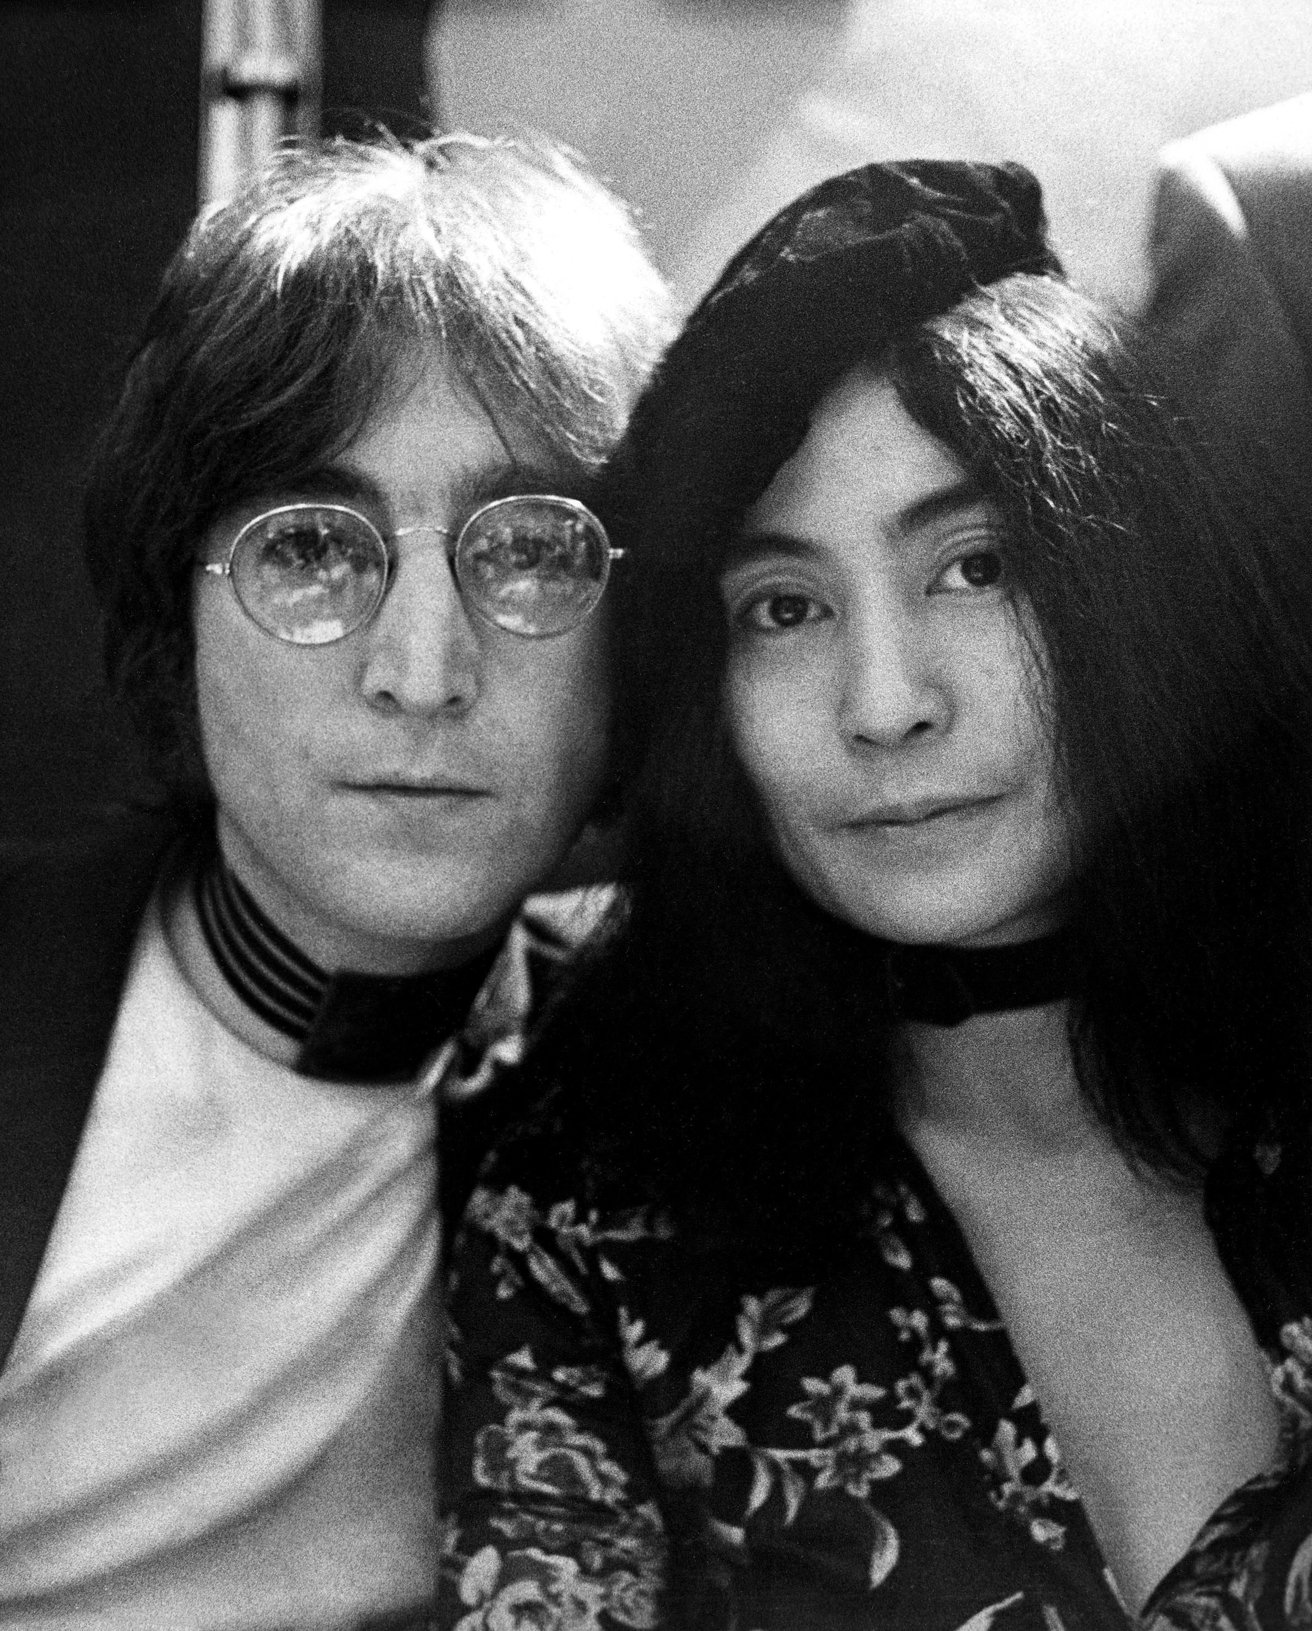 John Lennon and Yoko Ono are featured in